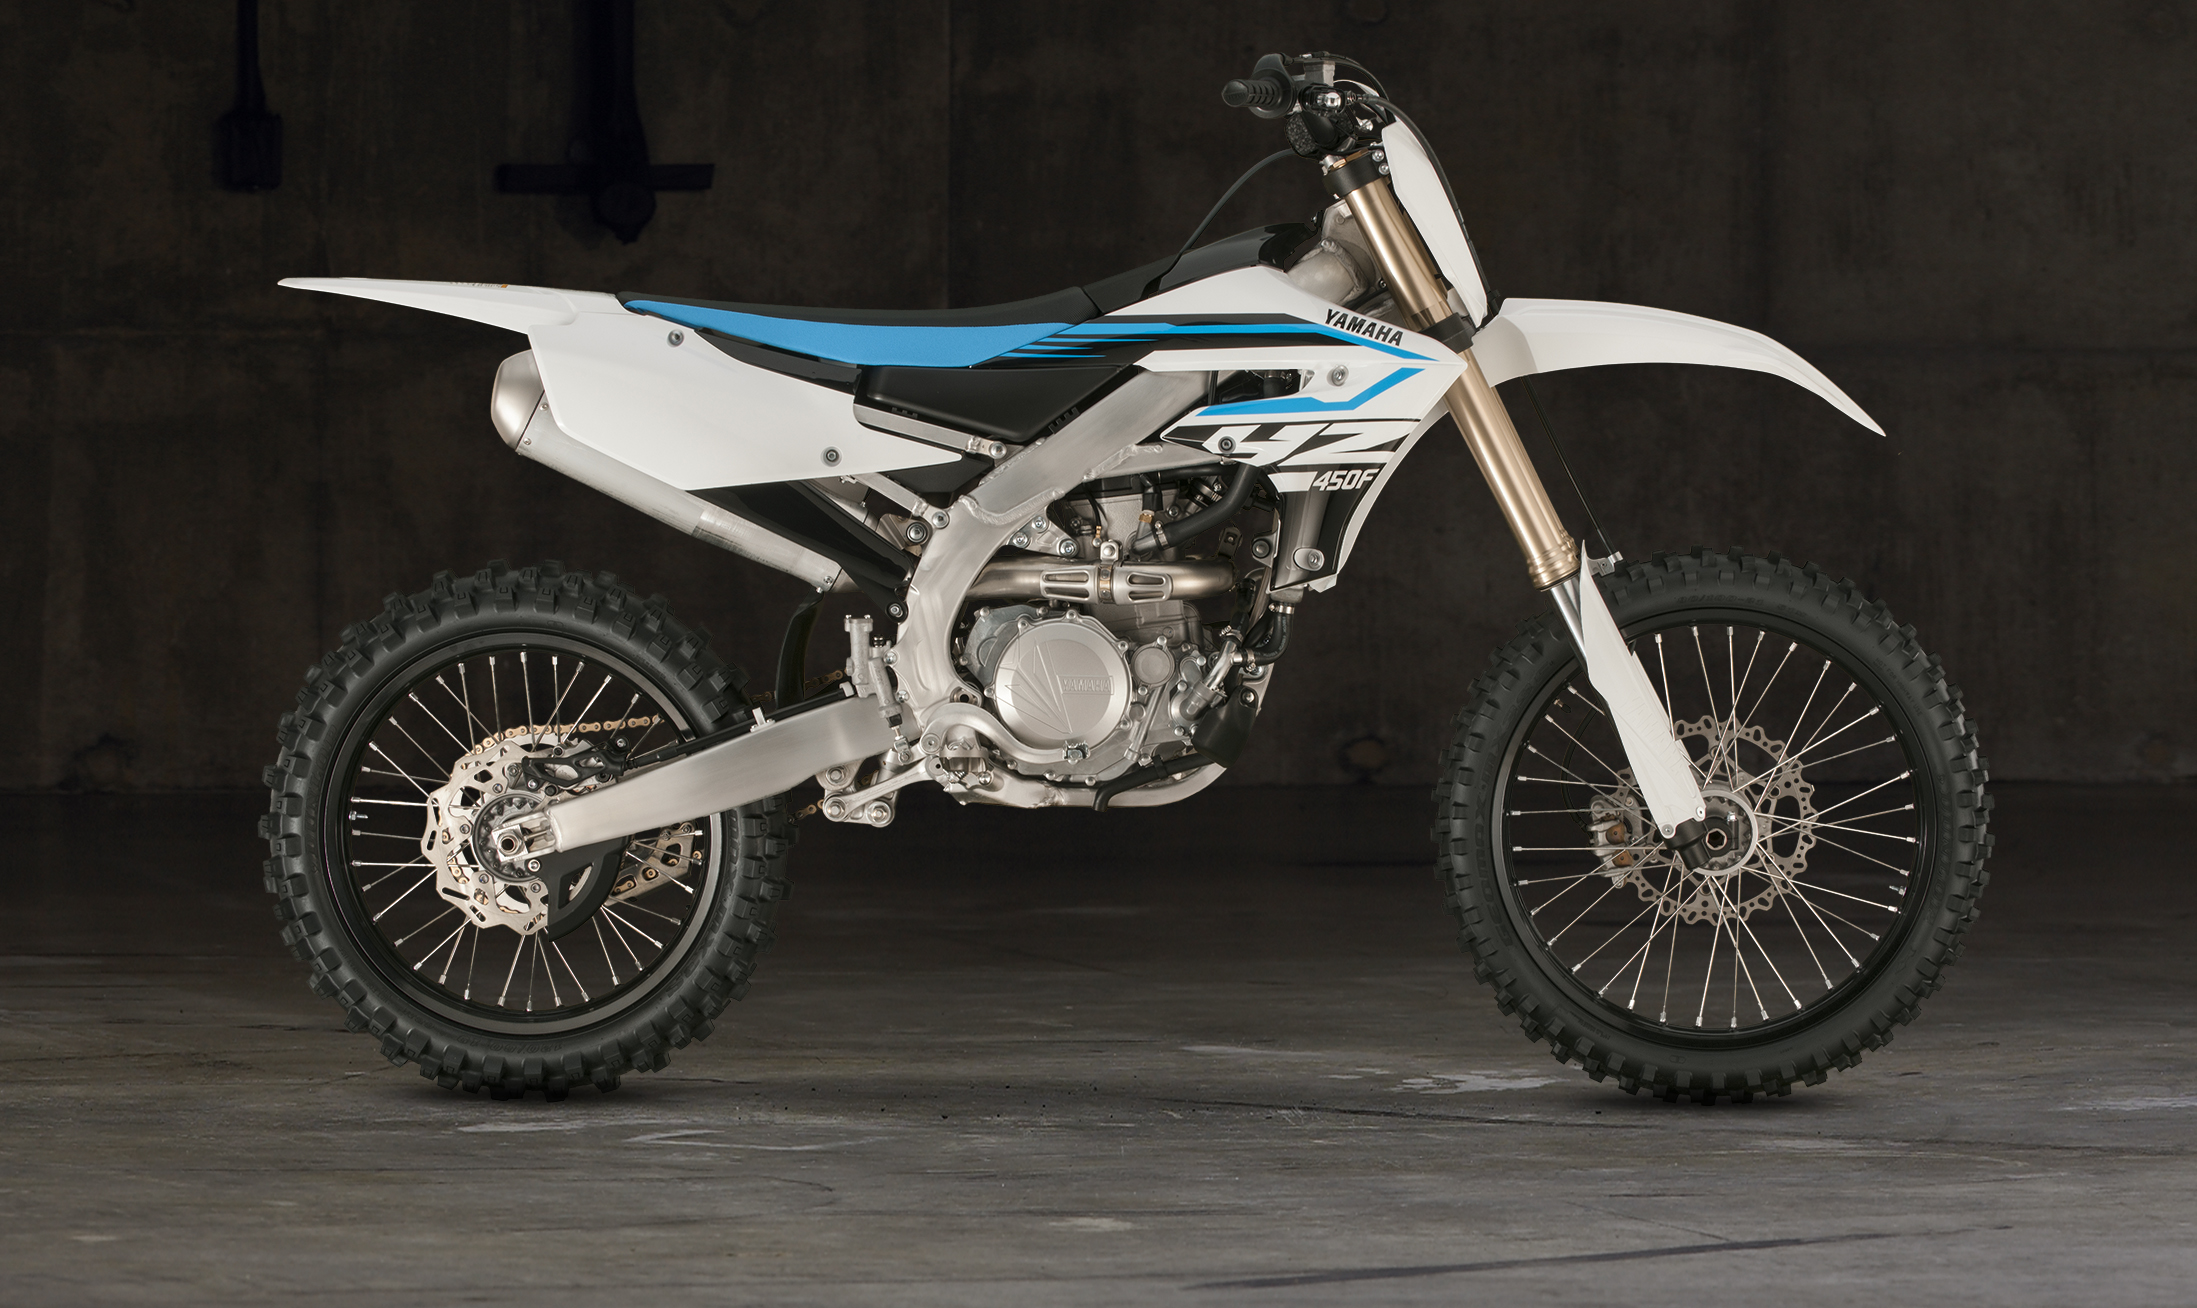 Yamaha 450 Atv >> 2018 Yamaha YZ450F Motocross Motorcycle - 360 View